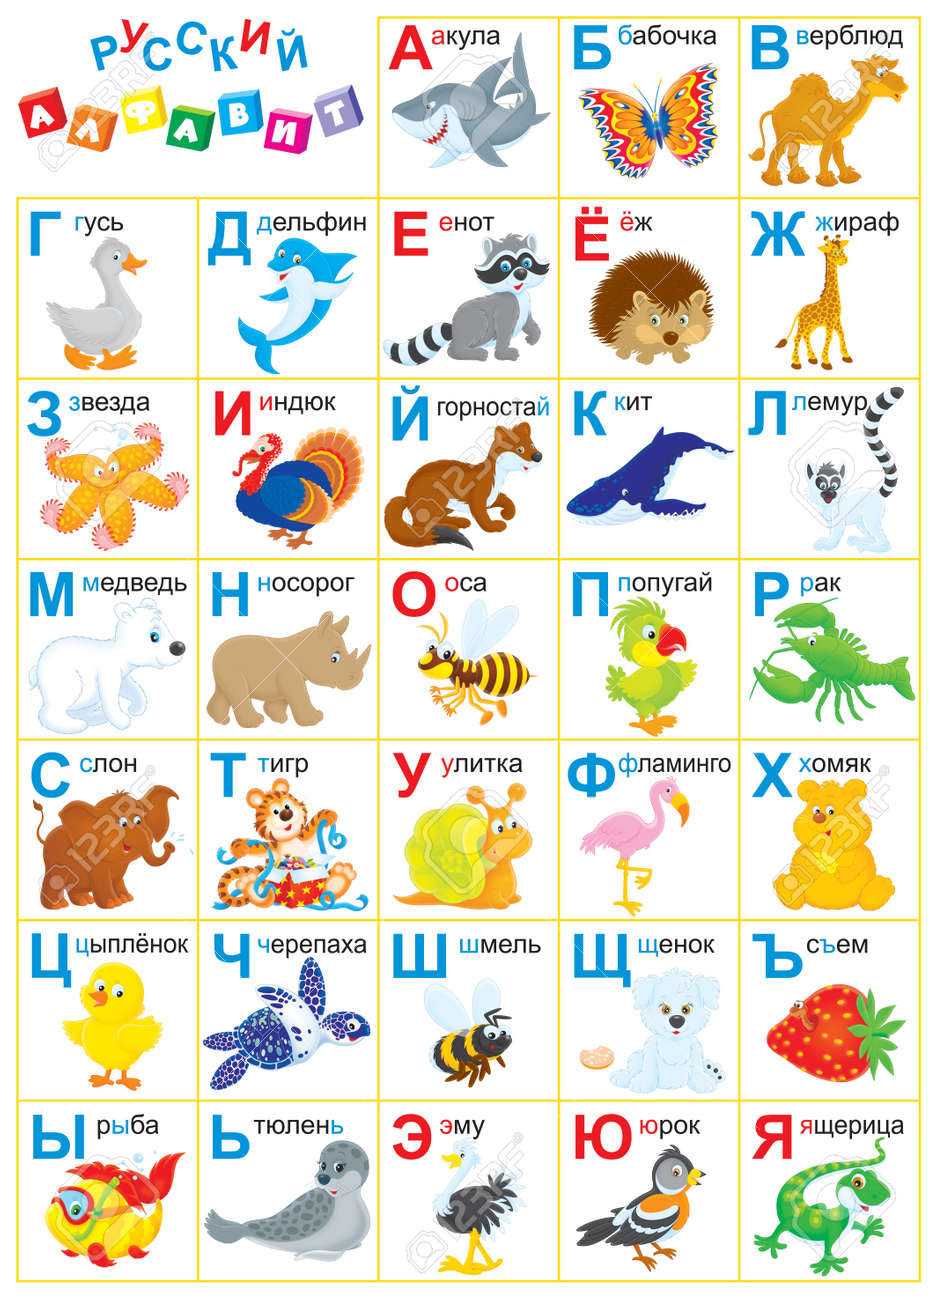 russian alphabet with funny animals for children stock photo